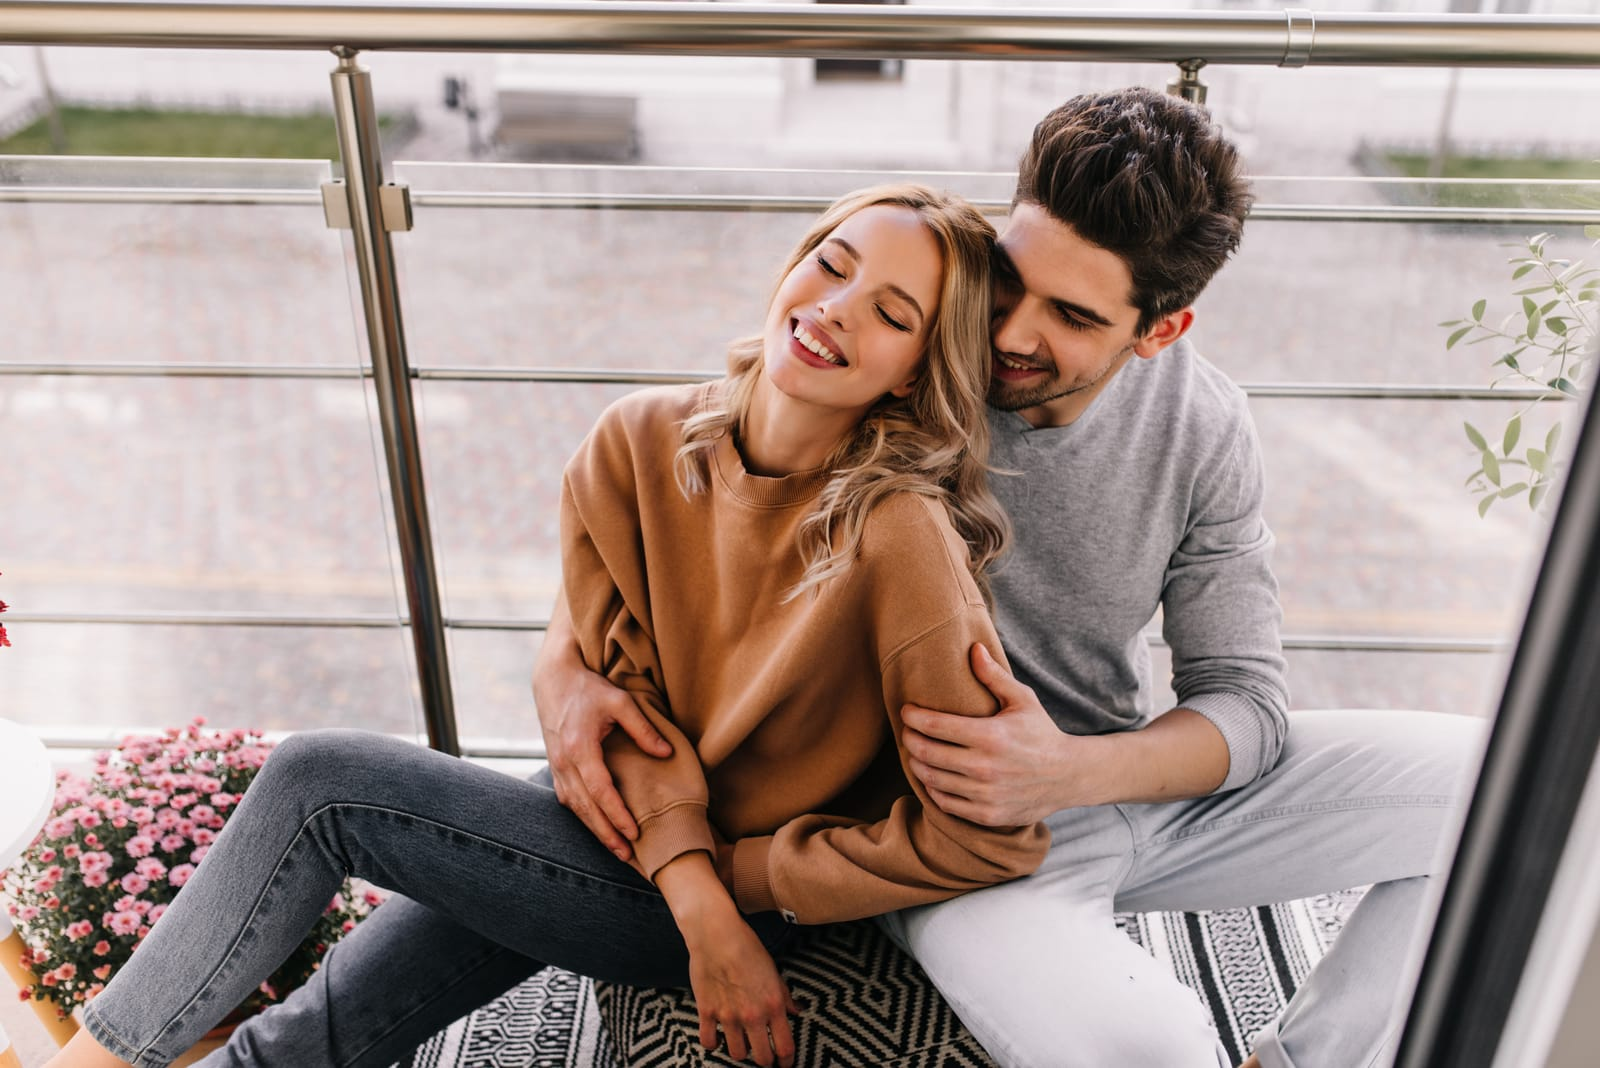 a man and a woman sit on the balcony embracing and laughing